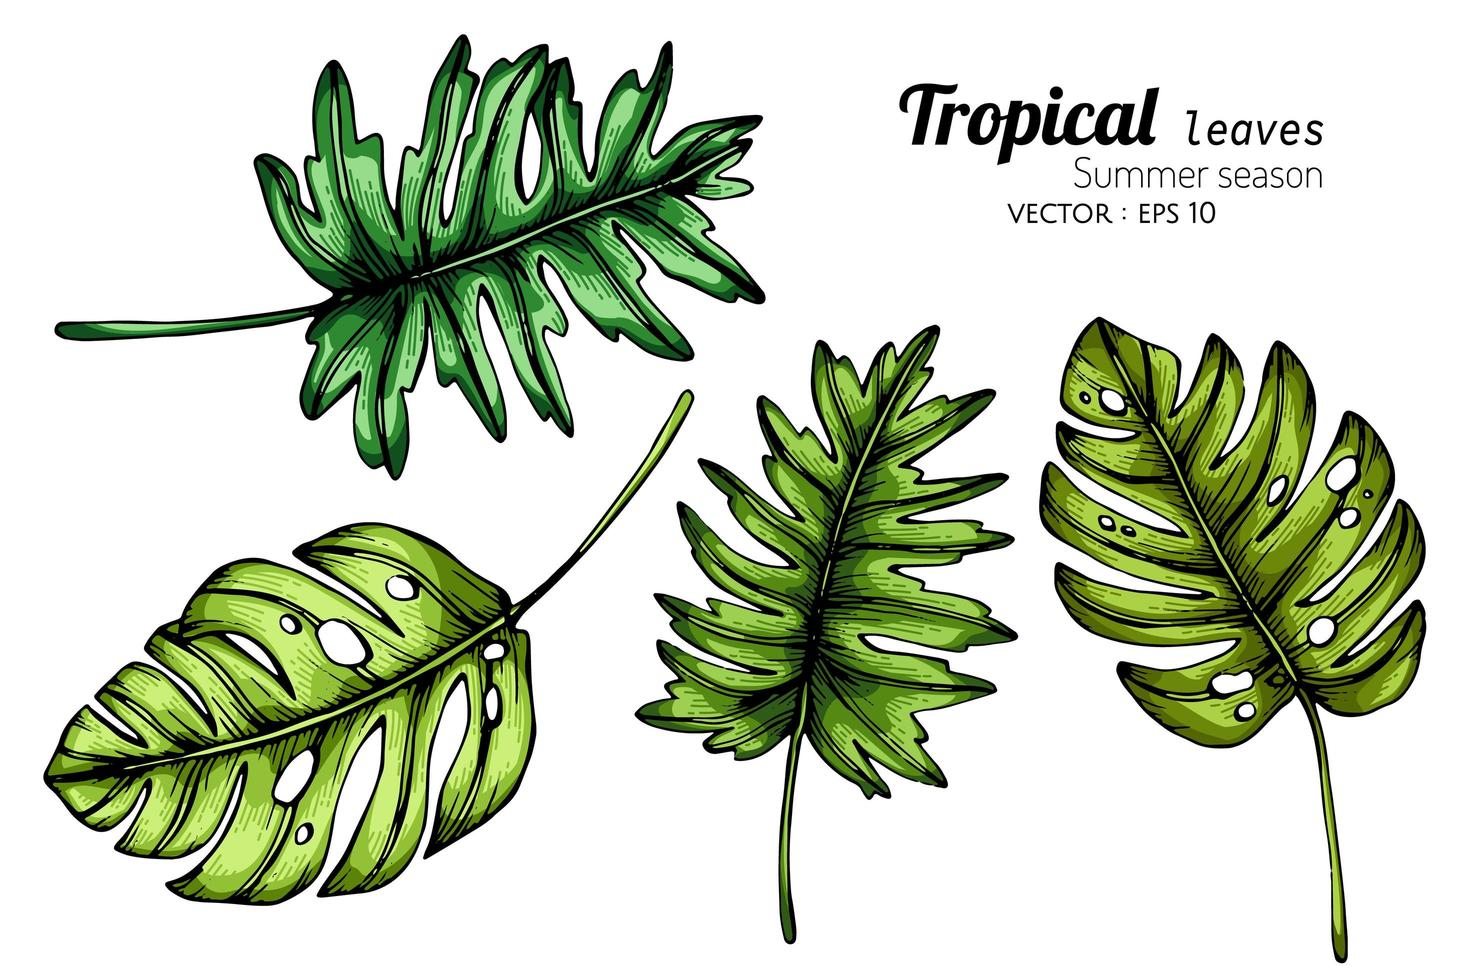 Set Of Large Tropical Leaves Download Free Vectors Clipart Graphics Vector Art ✓ free for commercial use ✓ high quality images. set of large tropical leaves download